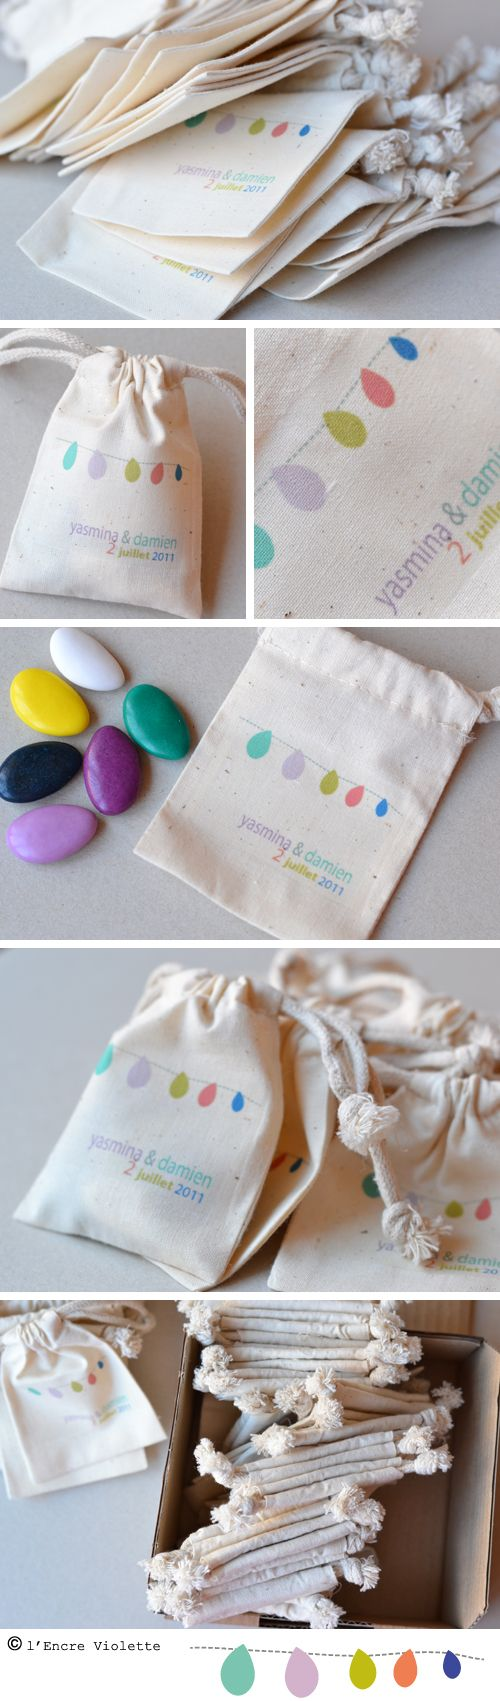 Cute bags. Craft for egg-stravaganza using colors of the wordless book for the rocks.